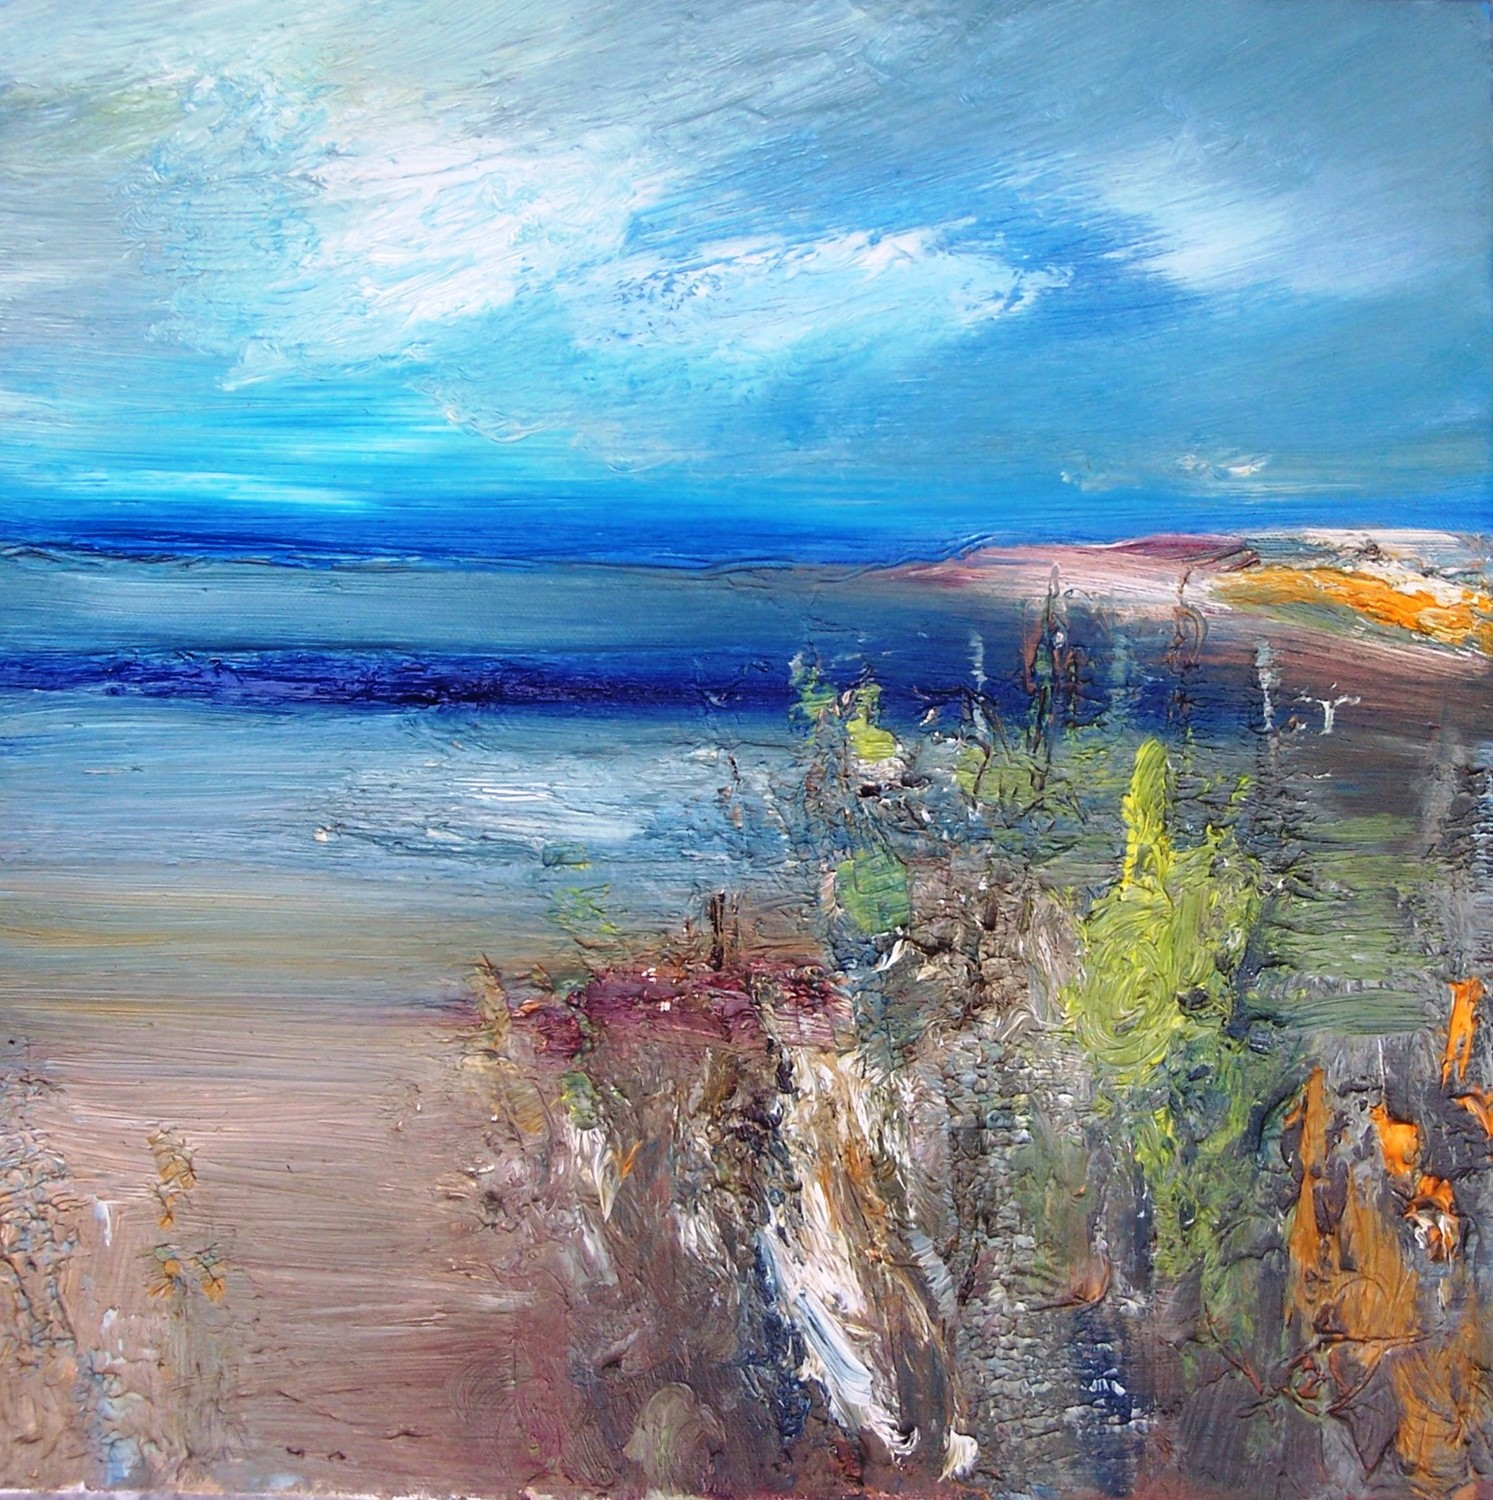 'Coastal Winds' by artist Rosanne Barr